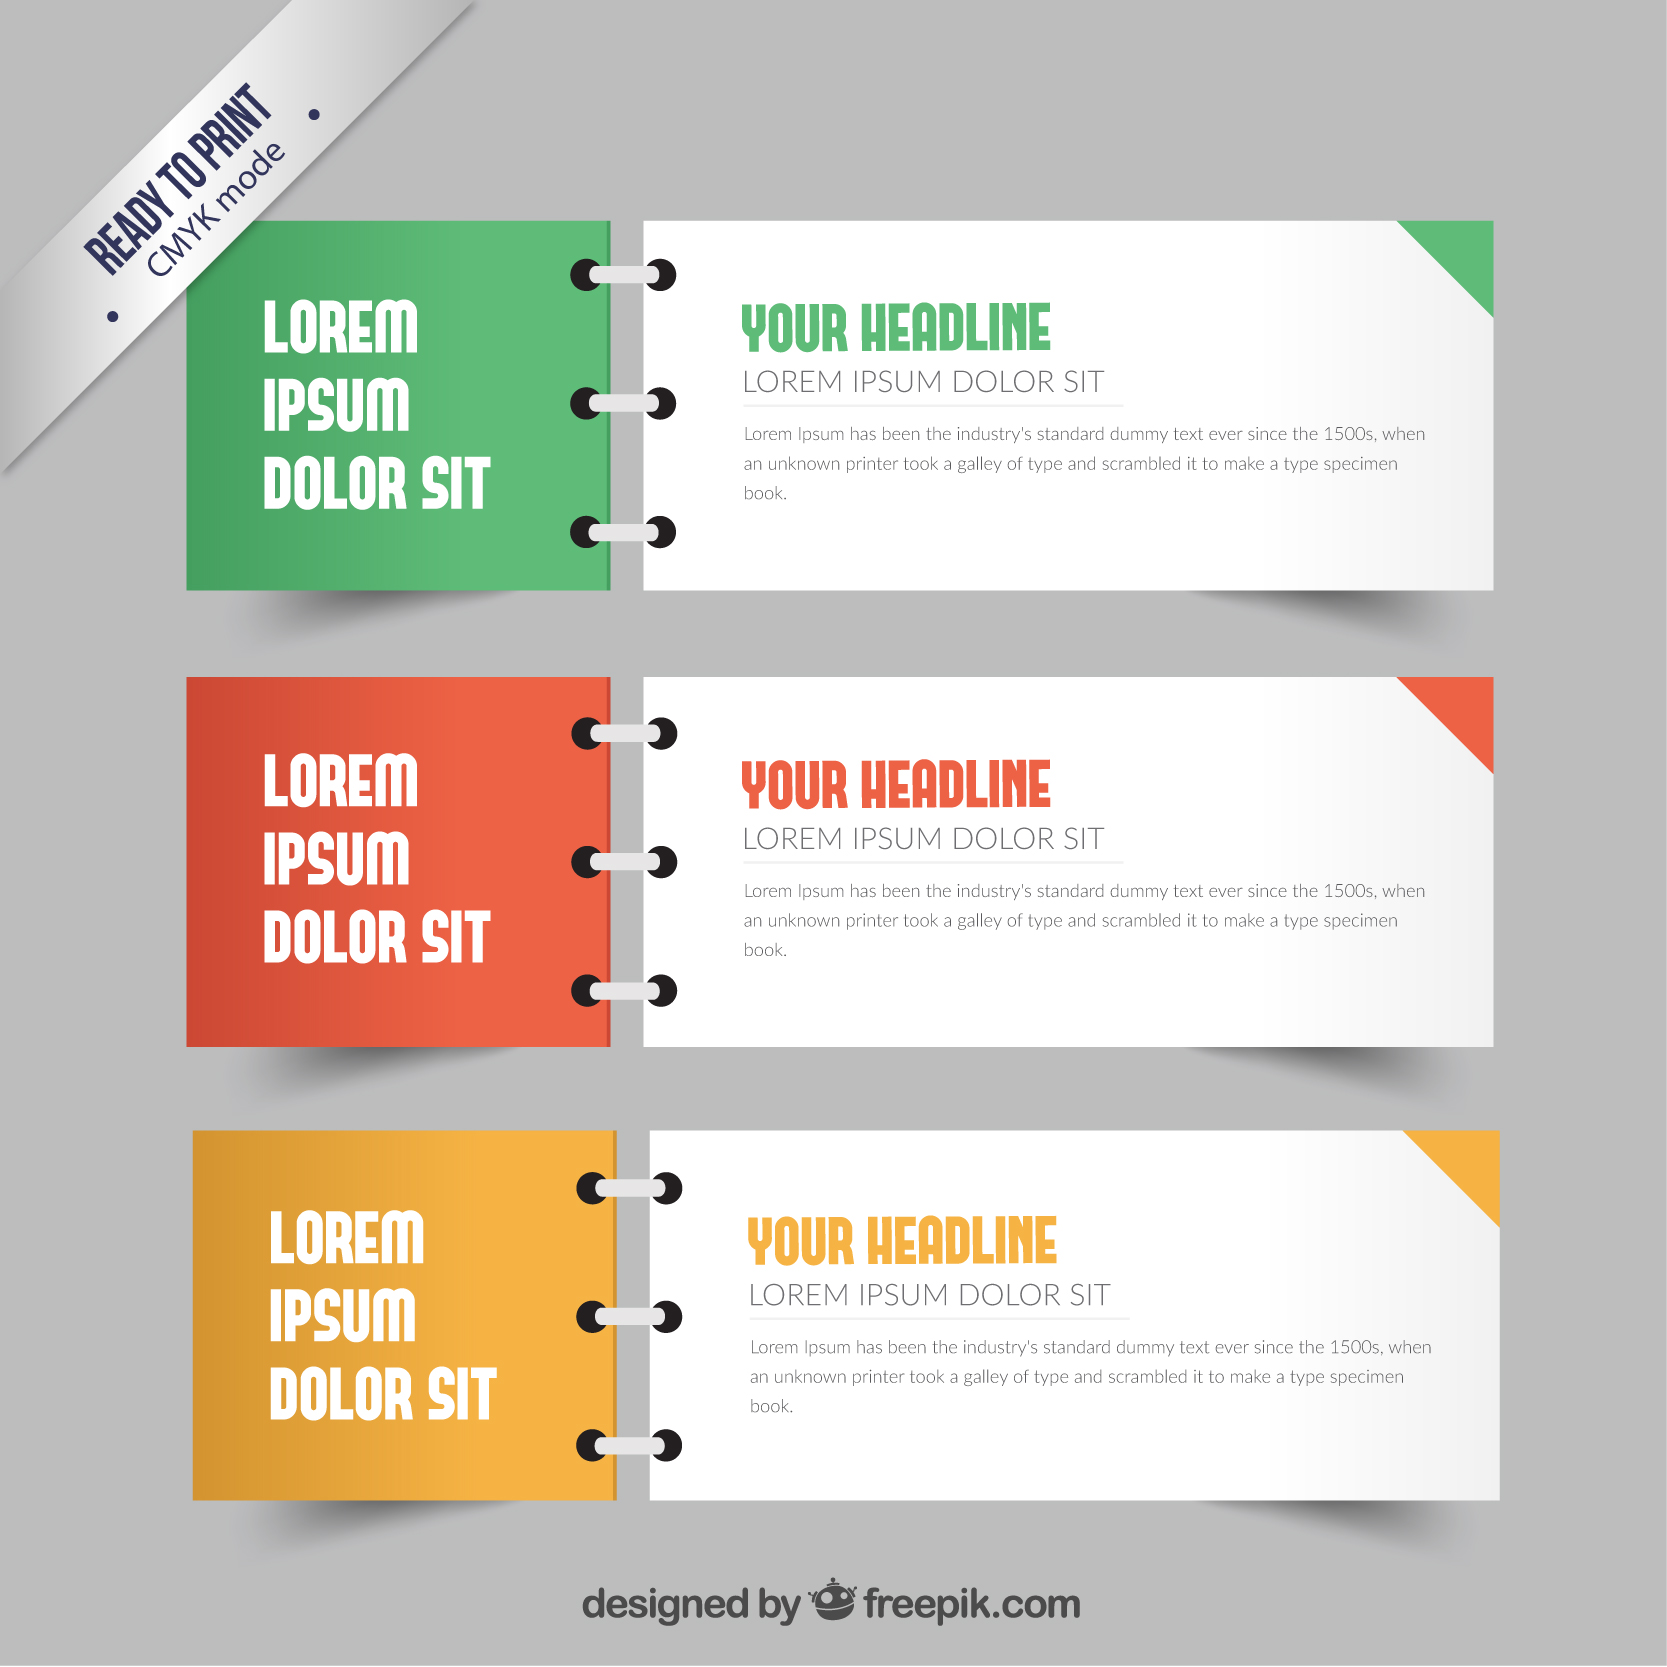 I will create banner ads for you